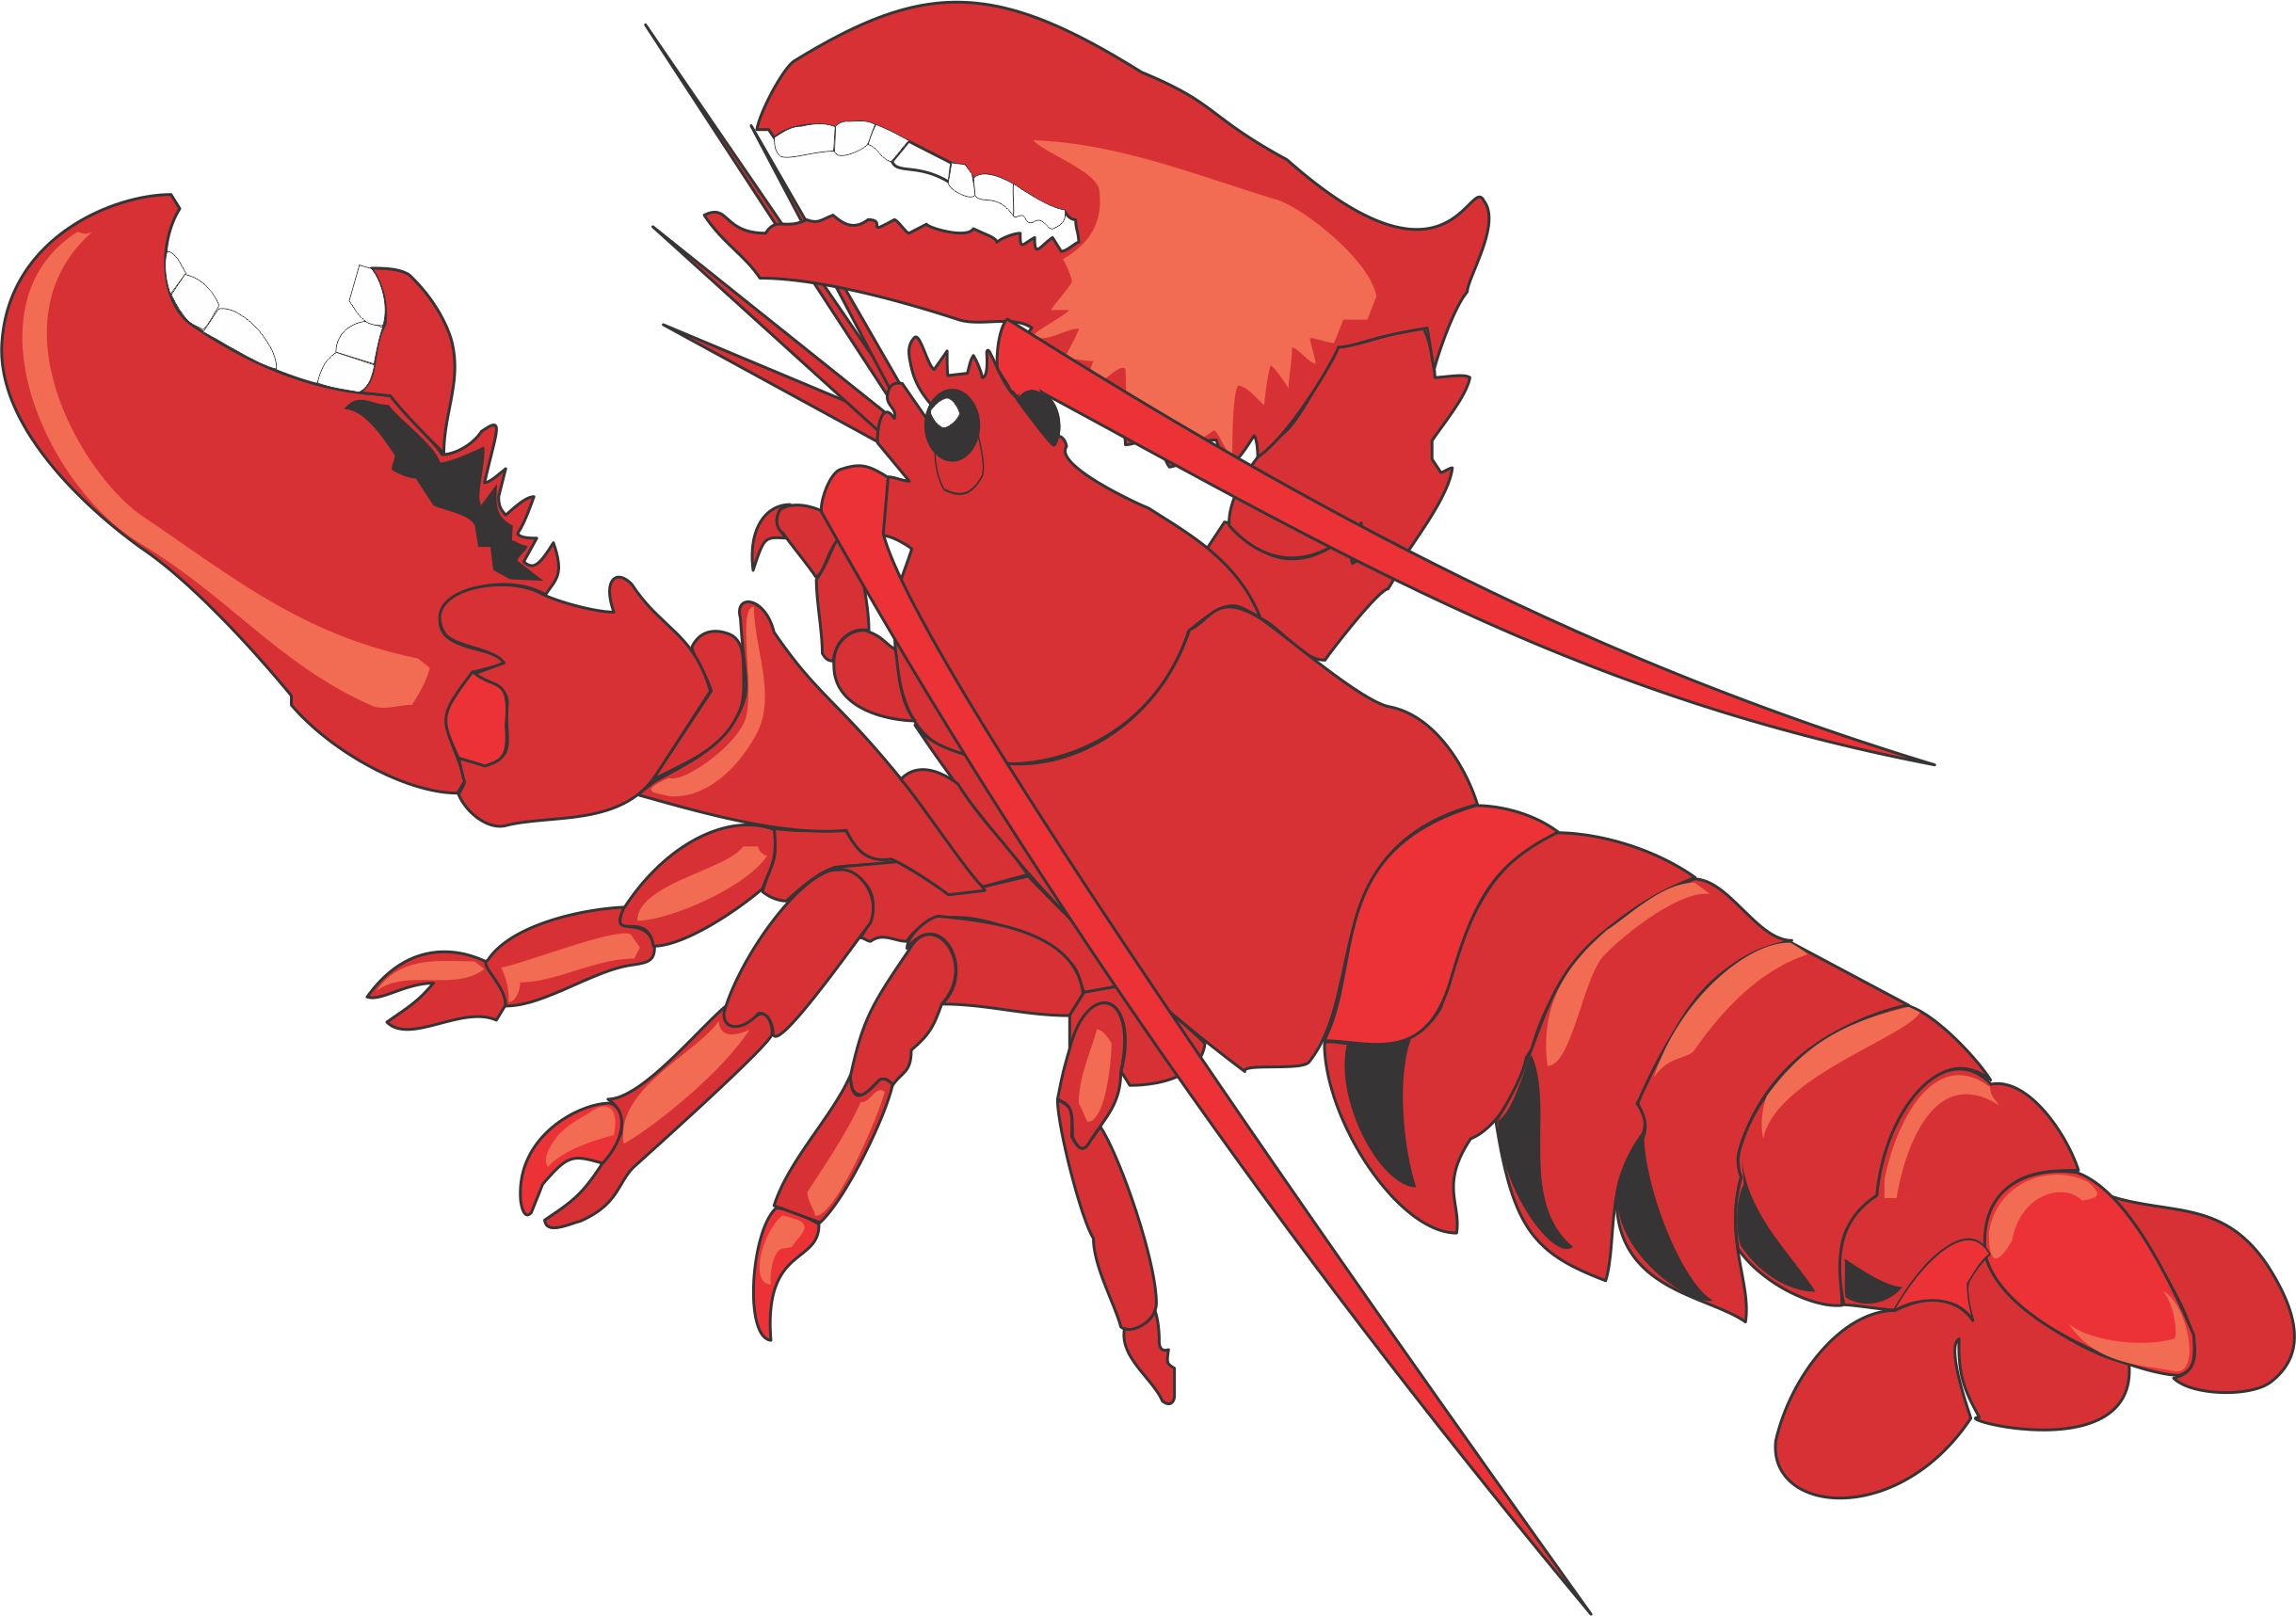 Seafood clipart invertebrate Images Clipart Art Free Clipart